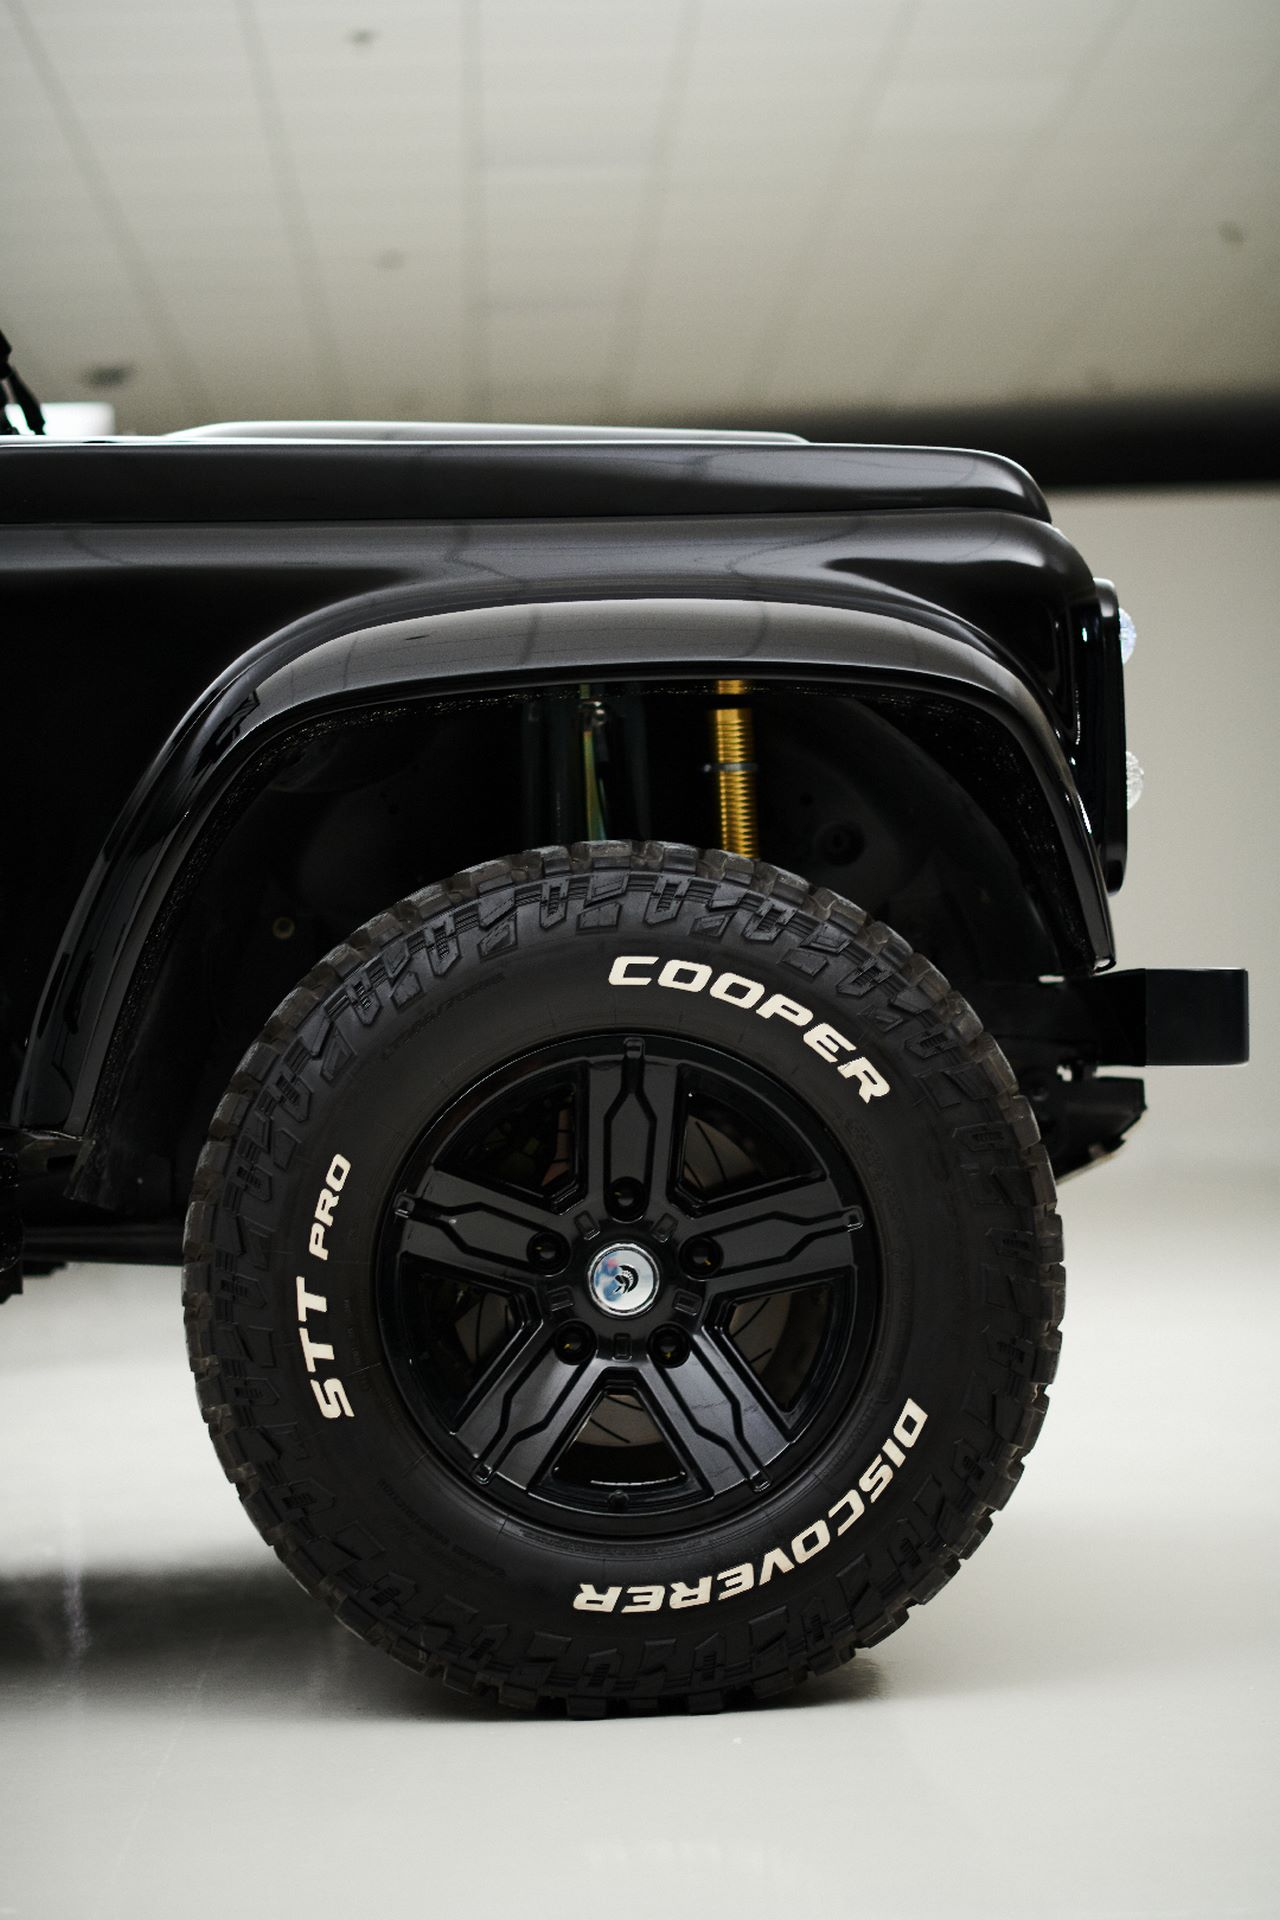 Porsche-911-964-Turbo-and-Land-Rover-Defender-by-Ares-Design-14